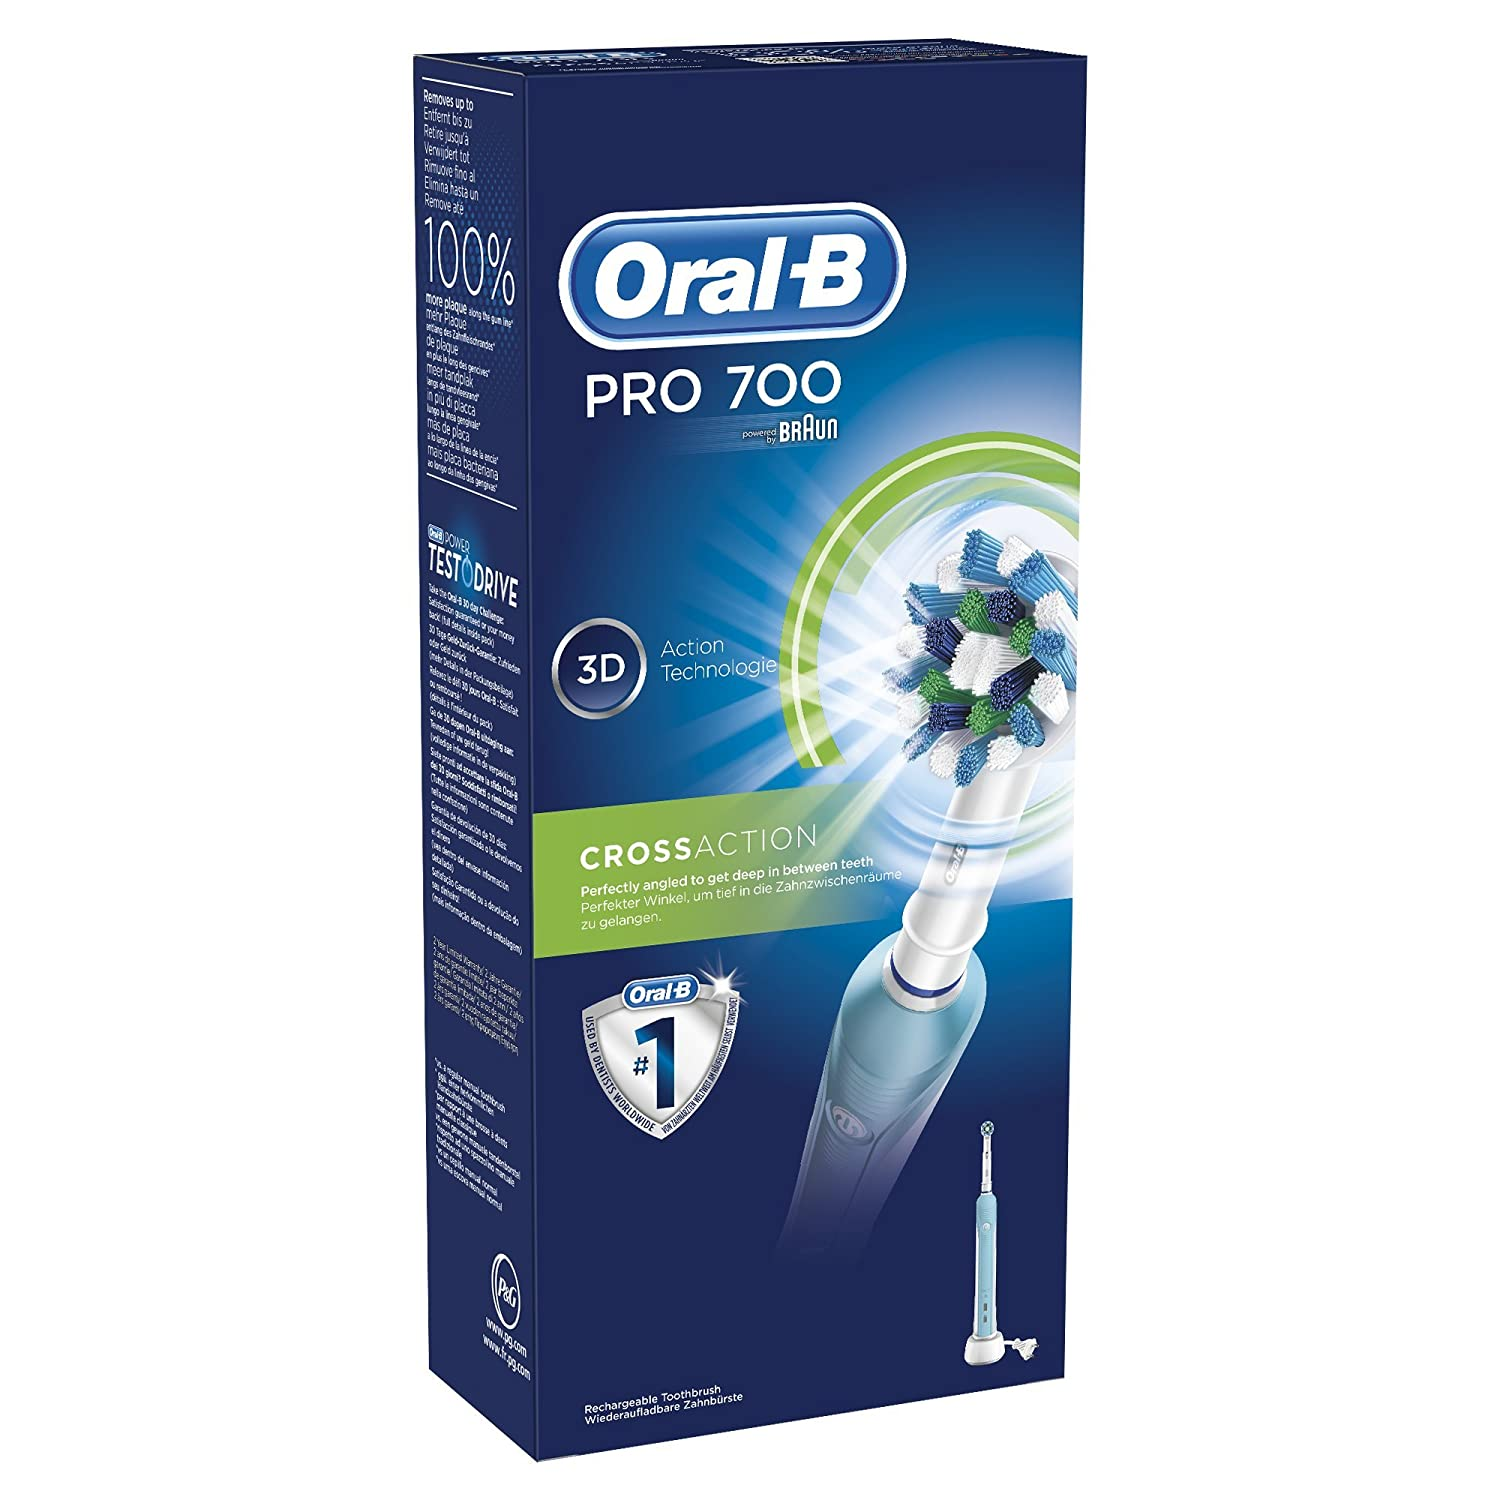 Oral-B PRO 700 Cross Action  Amazon.it  Salute e cura della persona ad241b8b72717